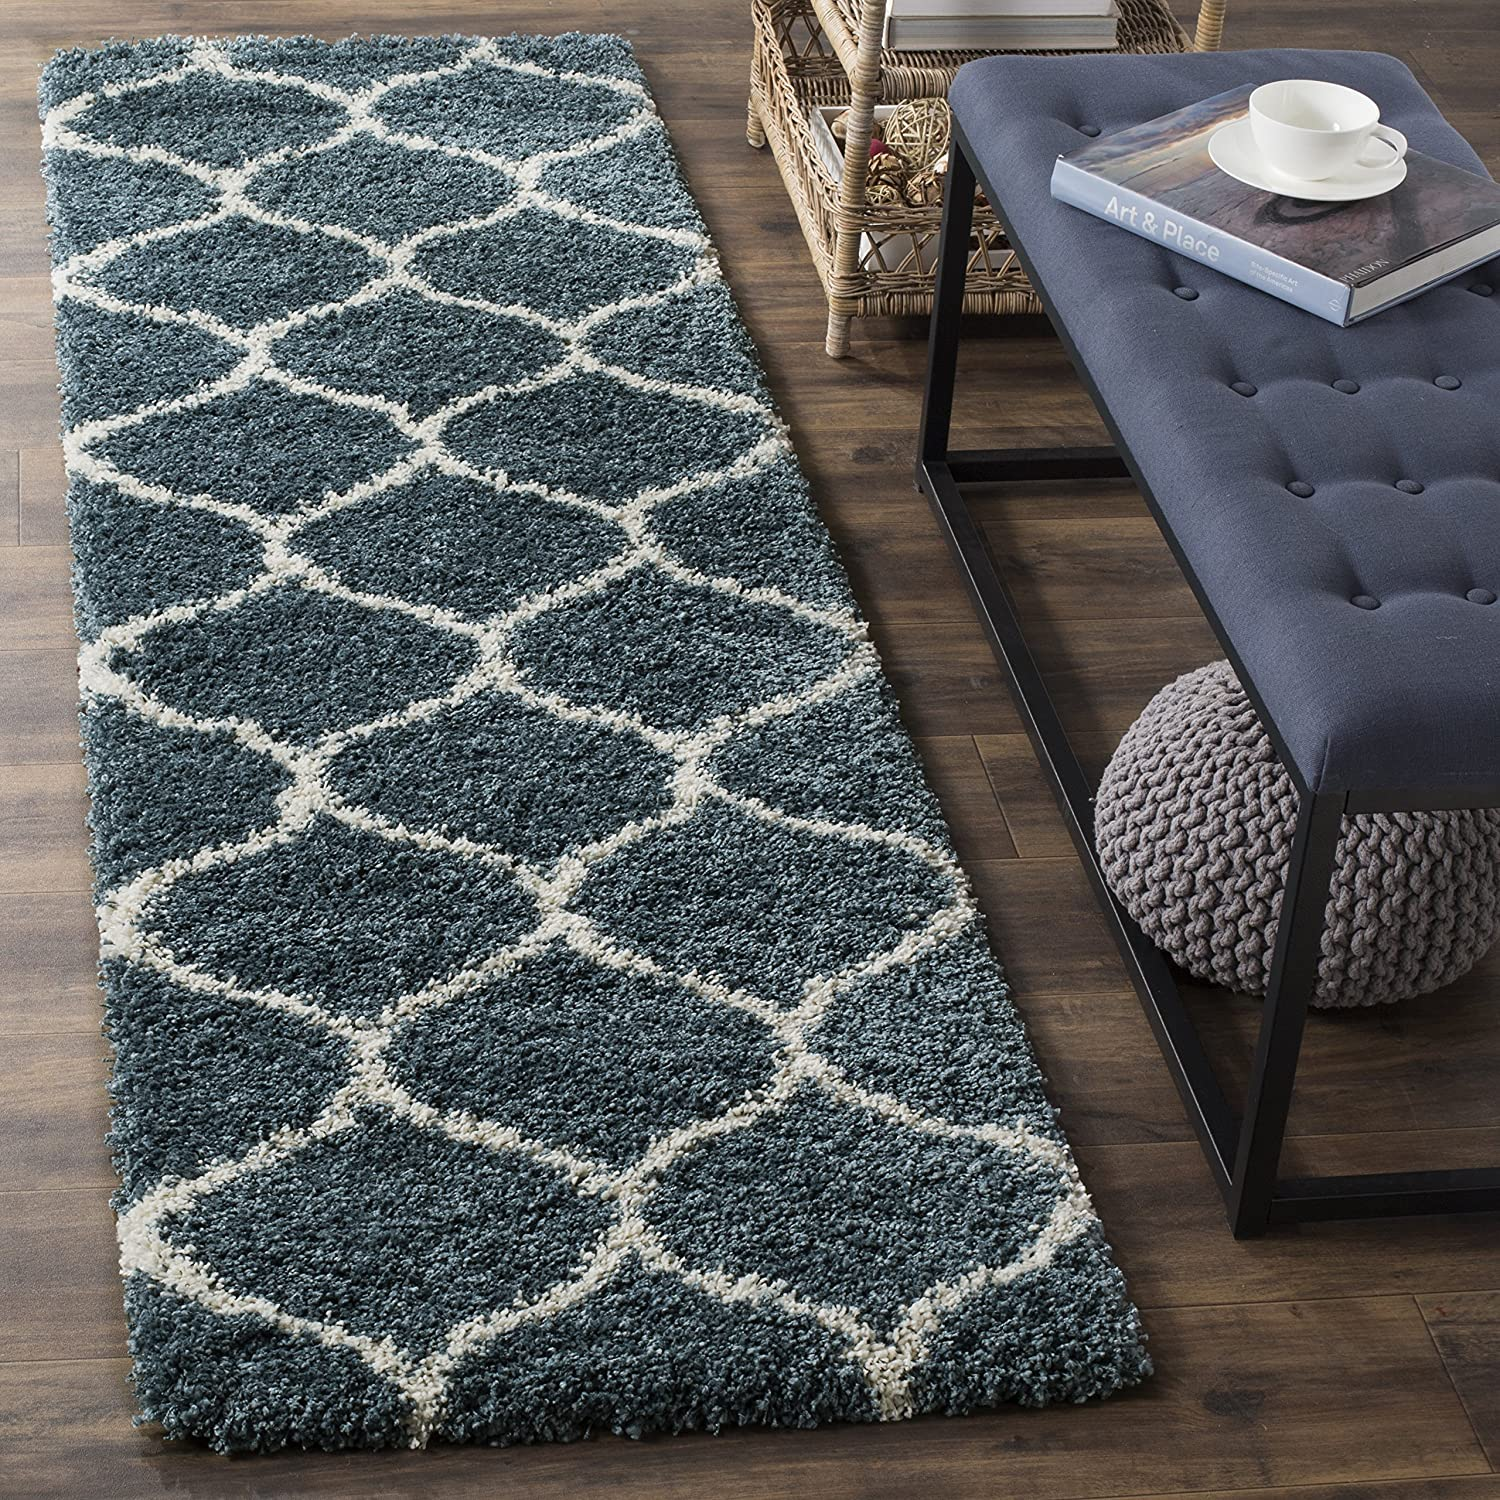 Safavieh Hudson Shag Collection SGH280L Slate and bluee Mgoldccan Ogee Plush Runner (2'3  x 12')